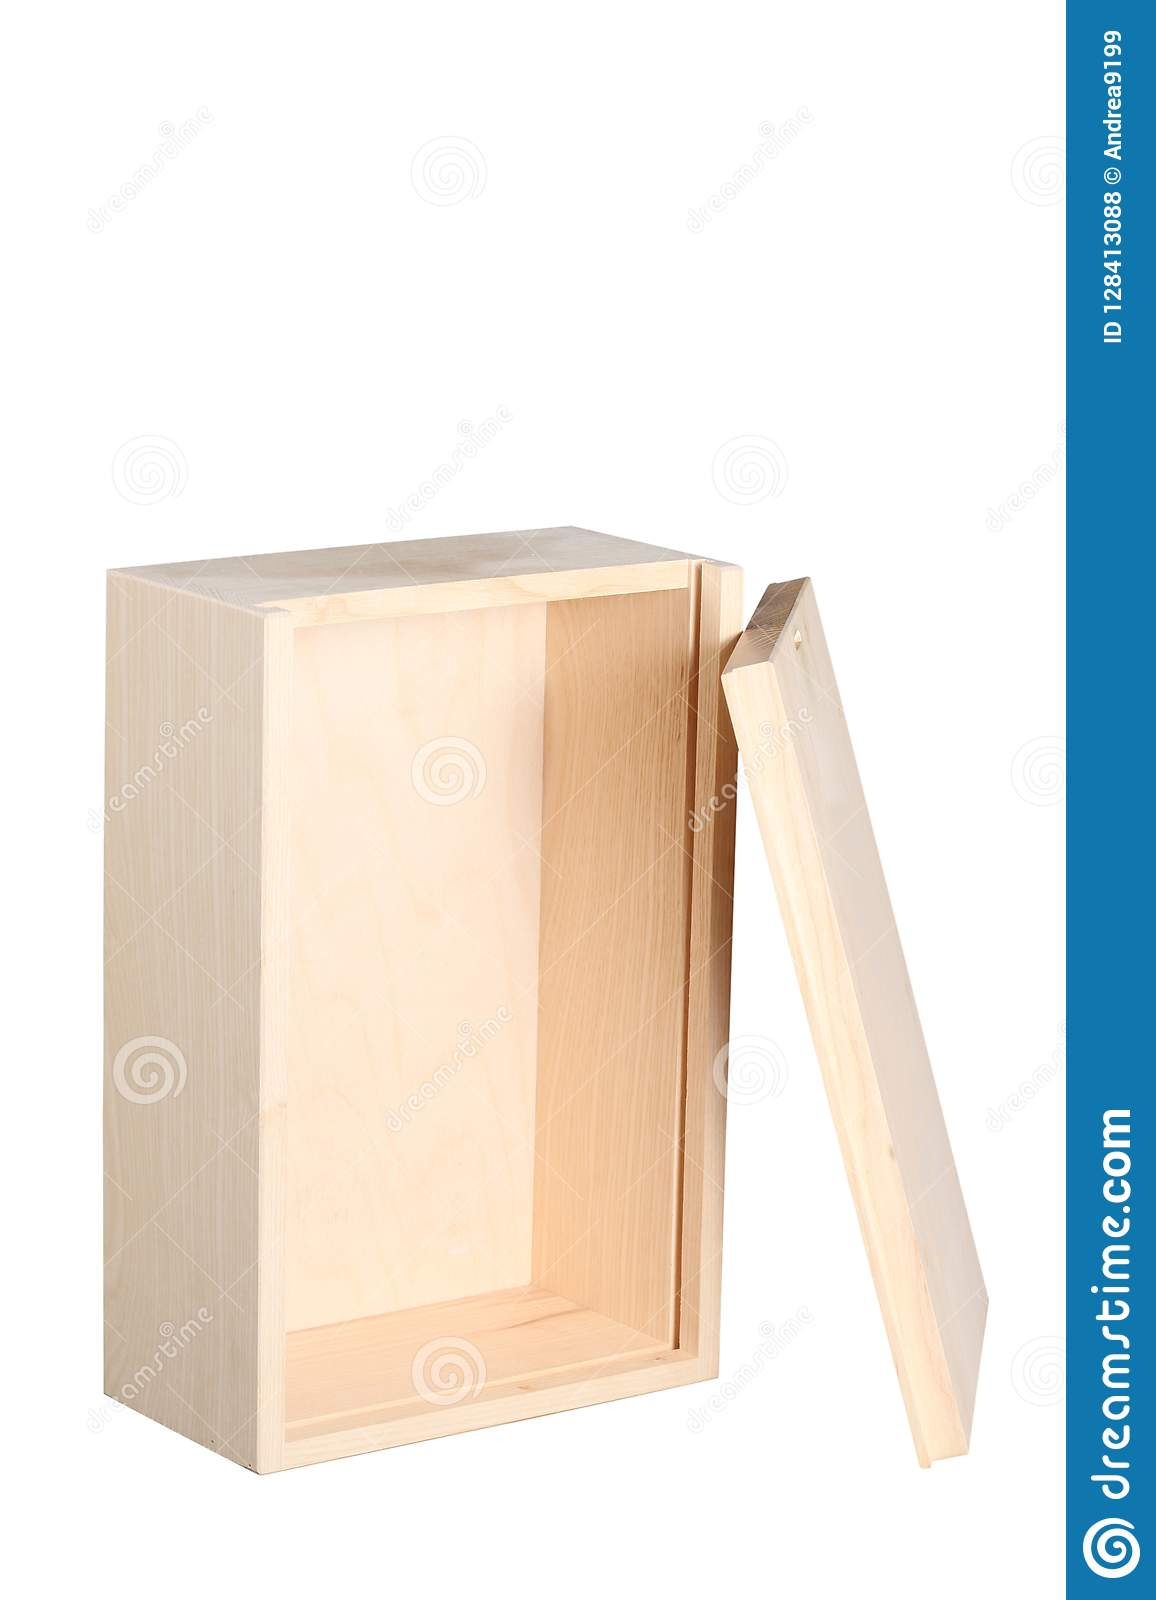 Open Wood Wine Box Isolated On White Background With Clipping Path